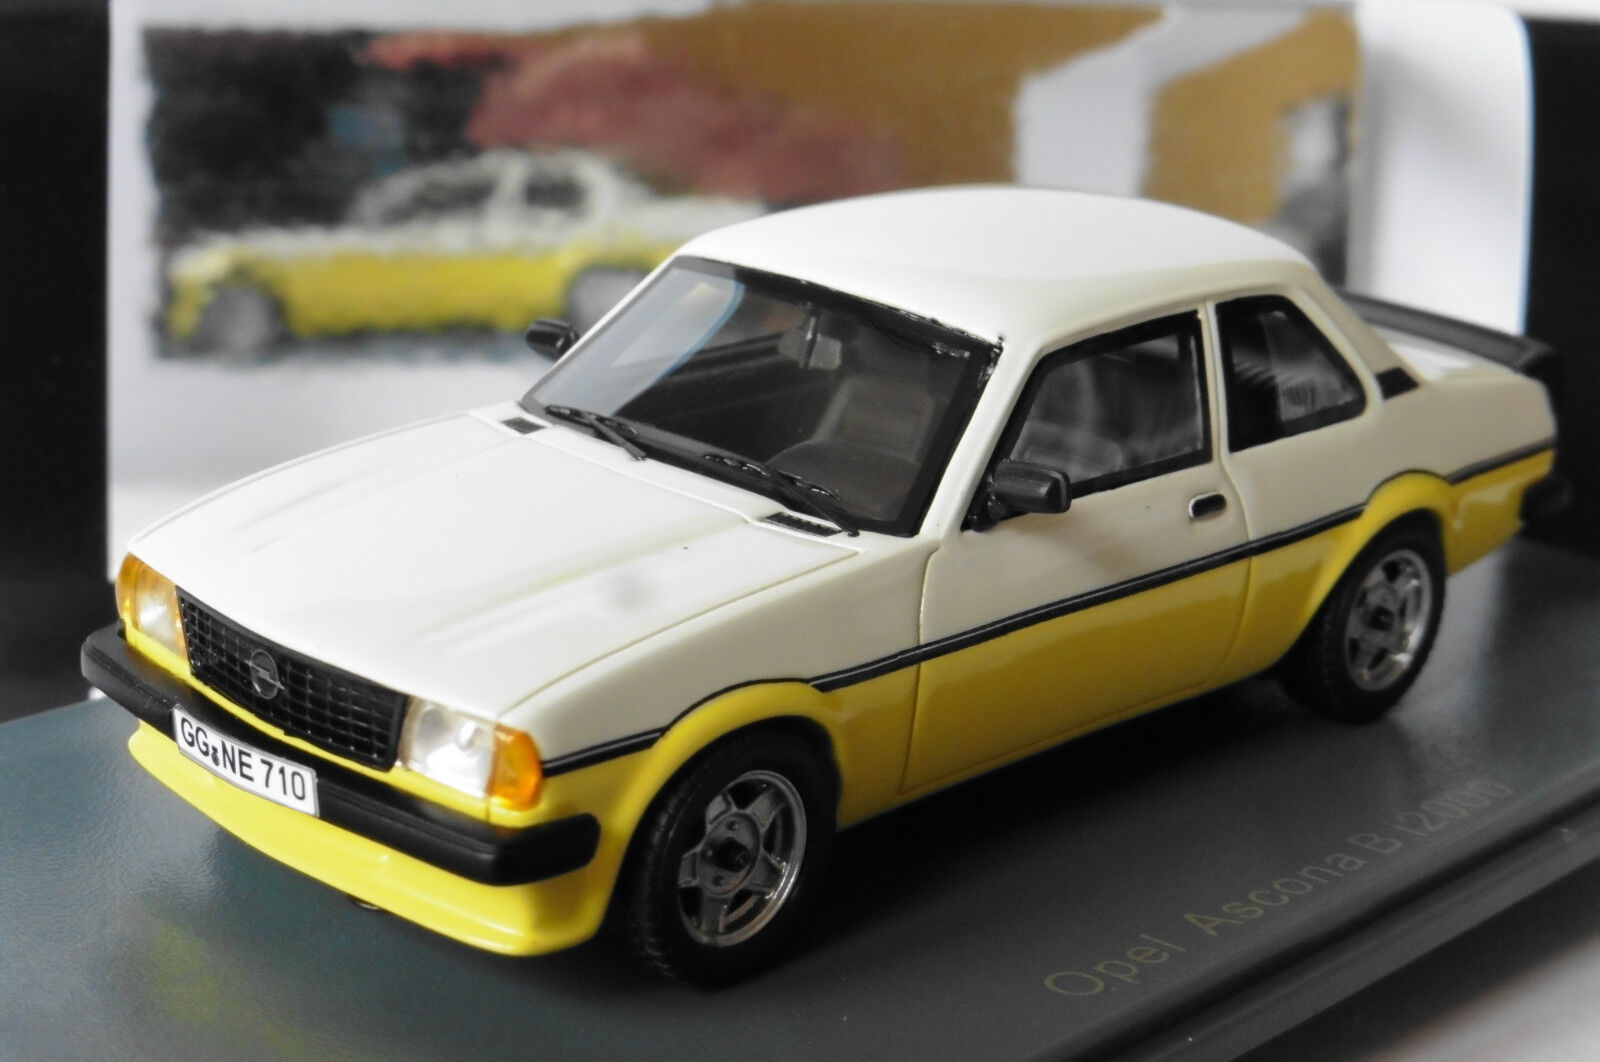 OPEL ASCONA 2.0 S R I2000 YELLOW WHITE 1980 NEO 43710 1 43 LIMITED 300 PCS yellow